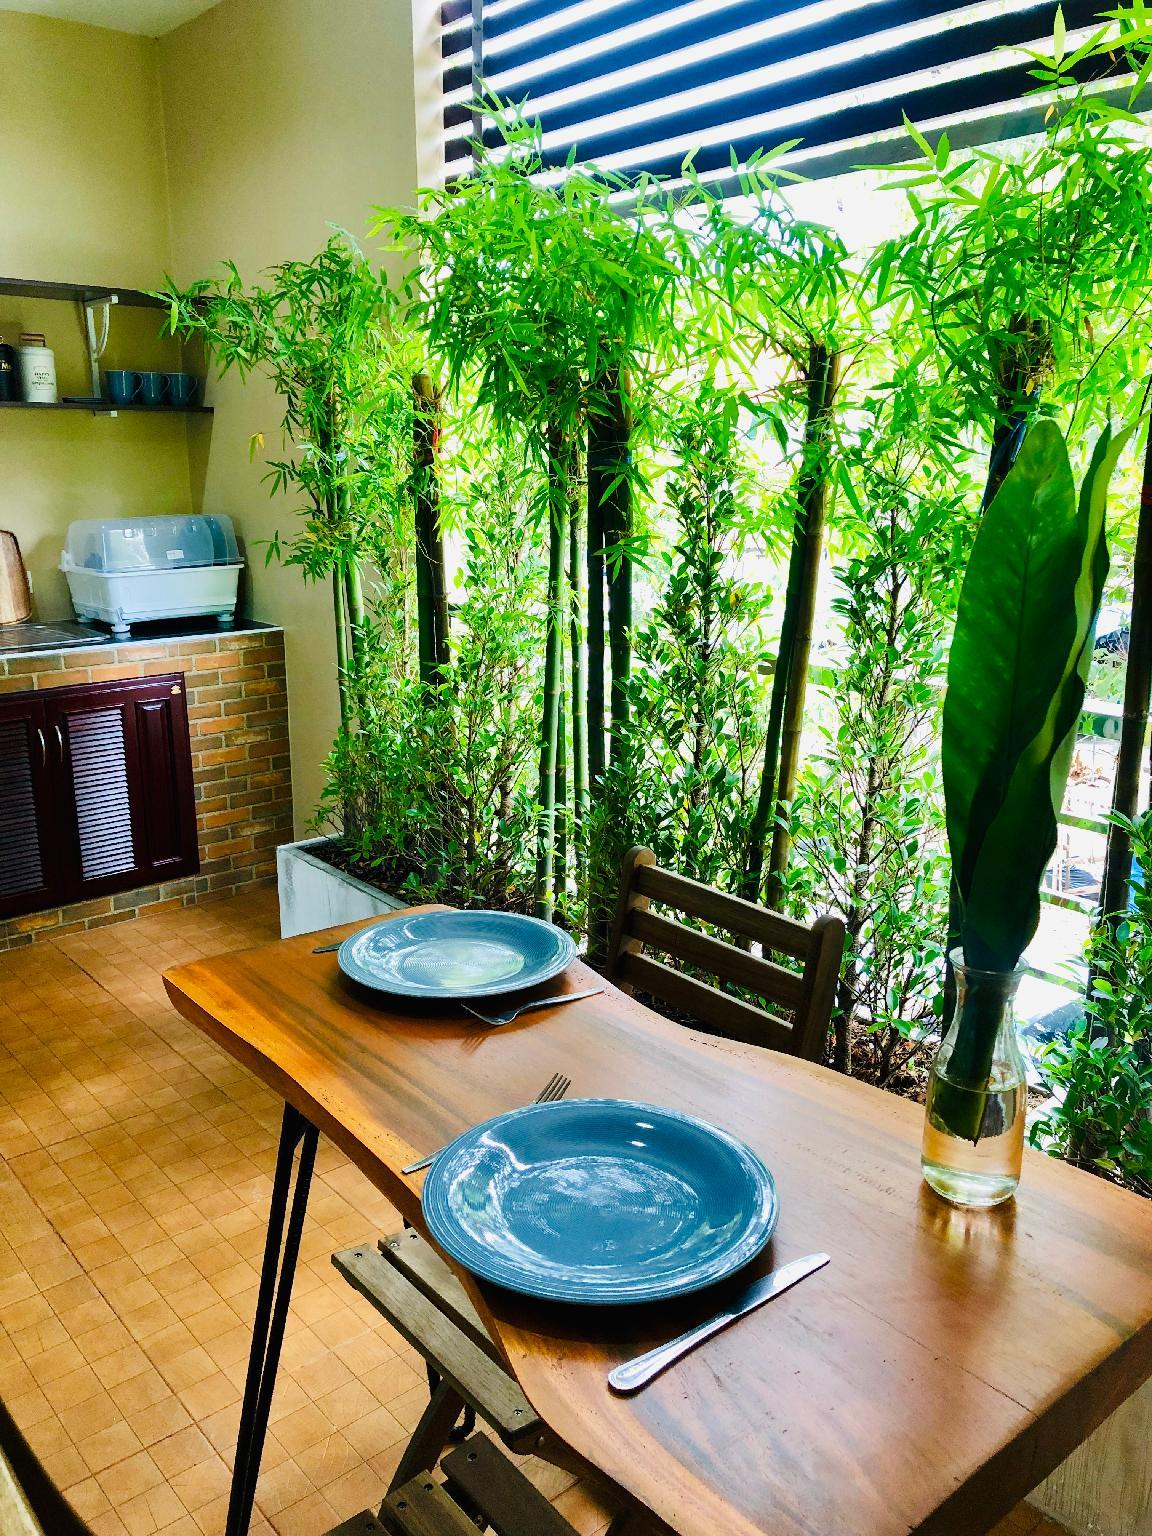 4 Rooms Green In Chaweng Noi